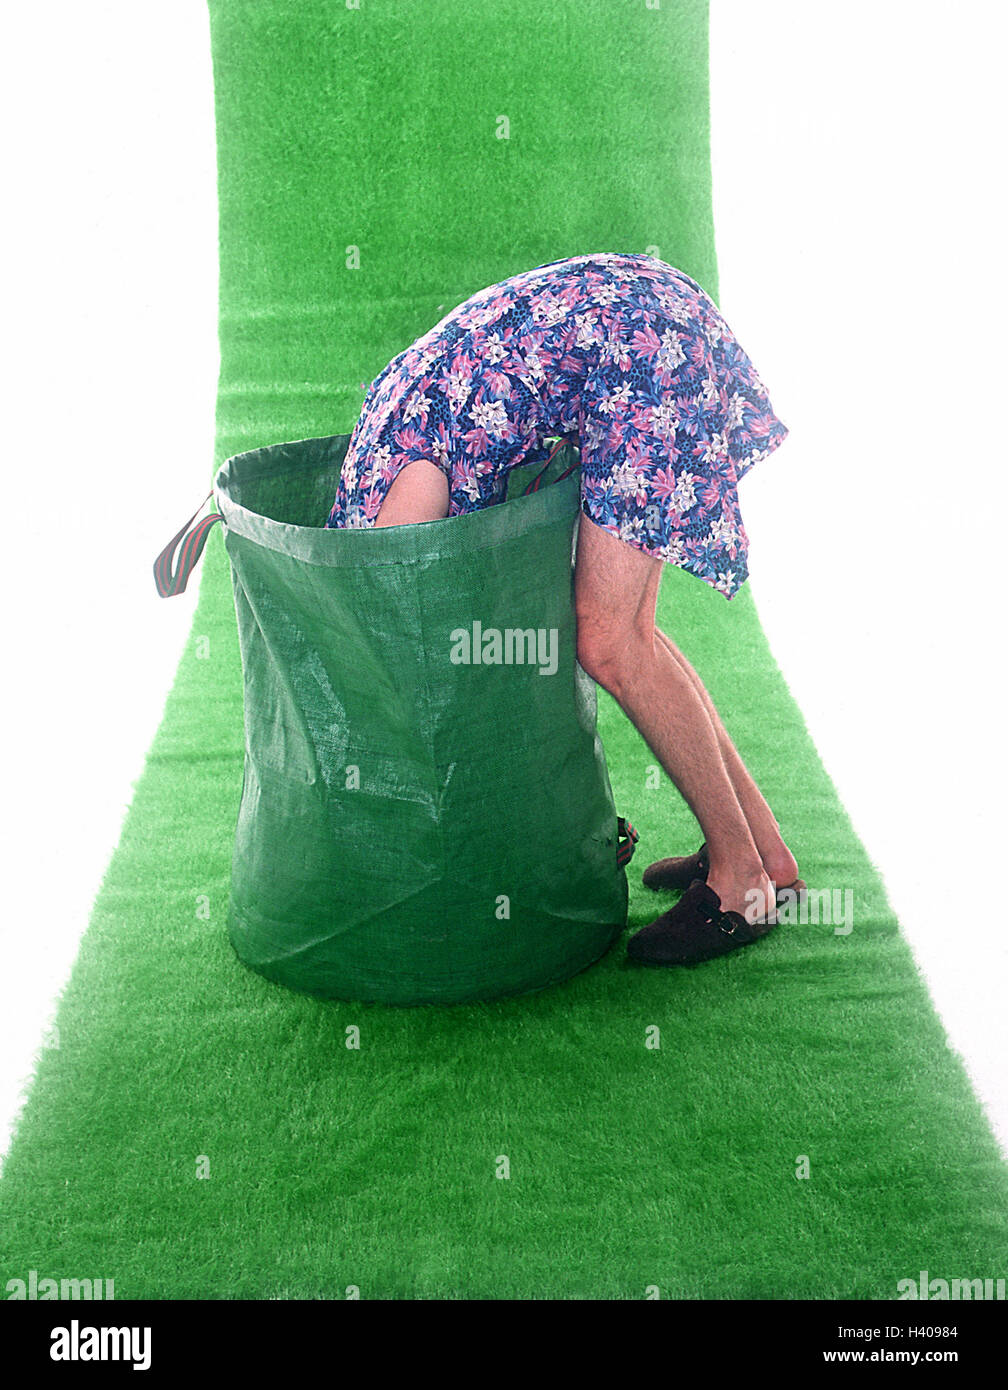 Art turfs, man, household dress, foliage pouch, hineinbeugen, side view, turfs, artificially, plastic turfs, icon, - Stock Image